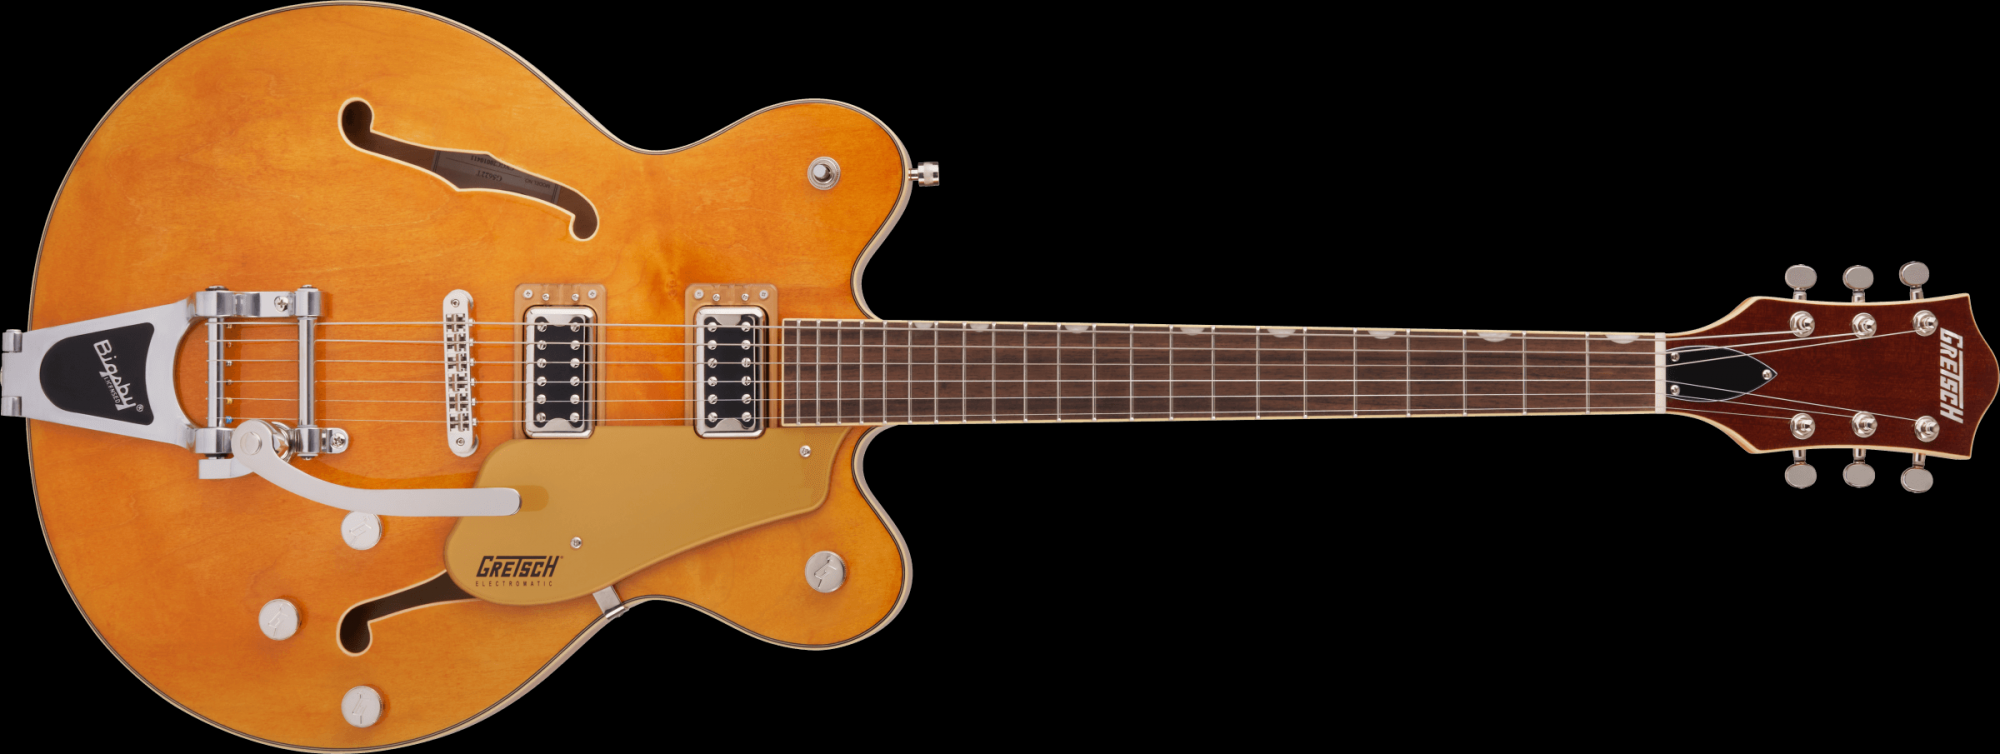 Gretsch  G5622T Electromatic Center Block Double-Cut with Bigsby - Laurel Fingerboard - Speyside